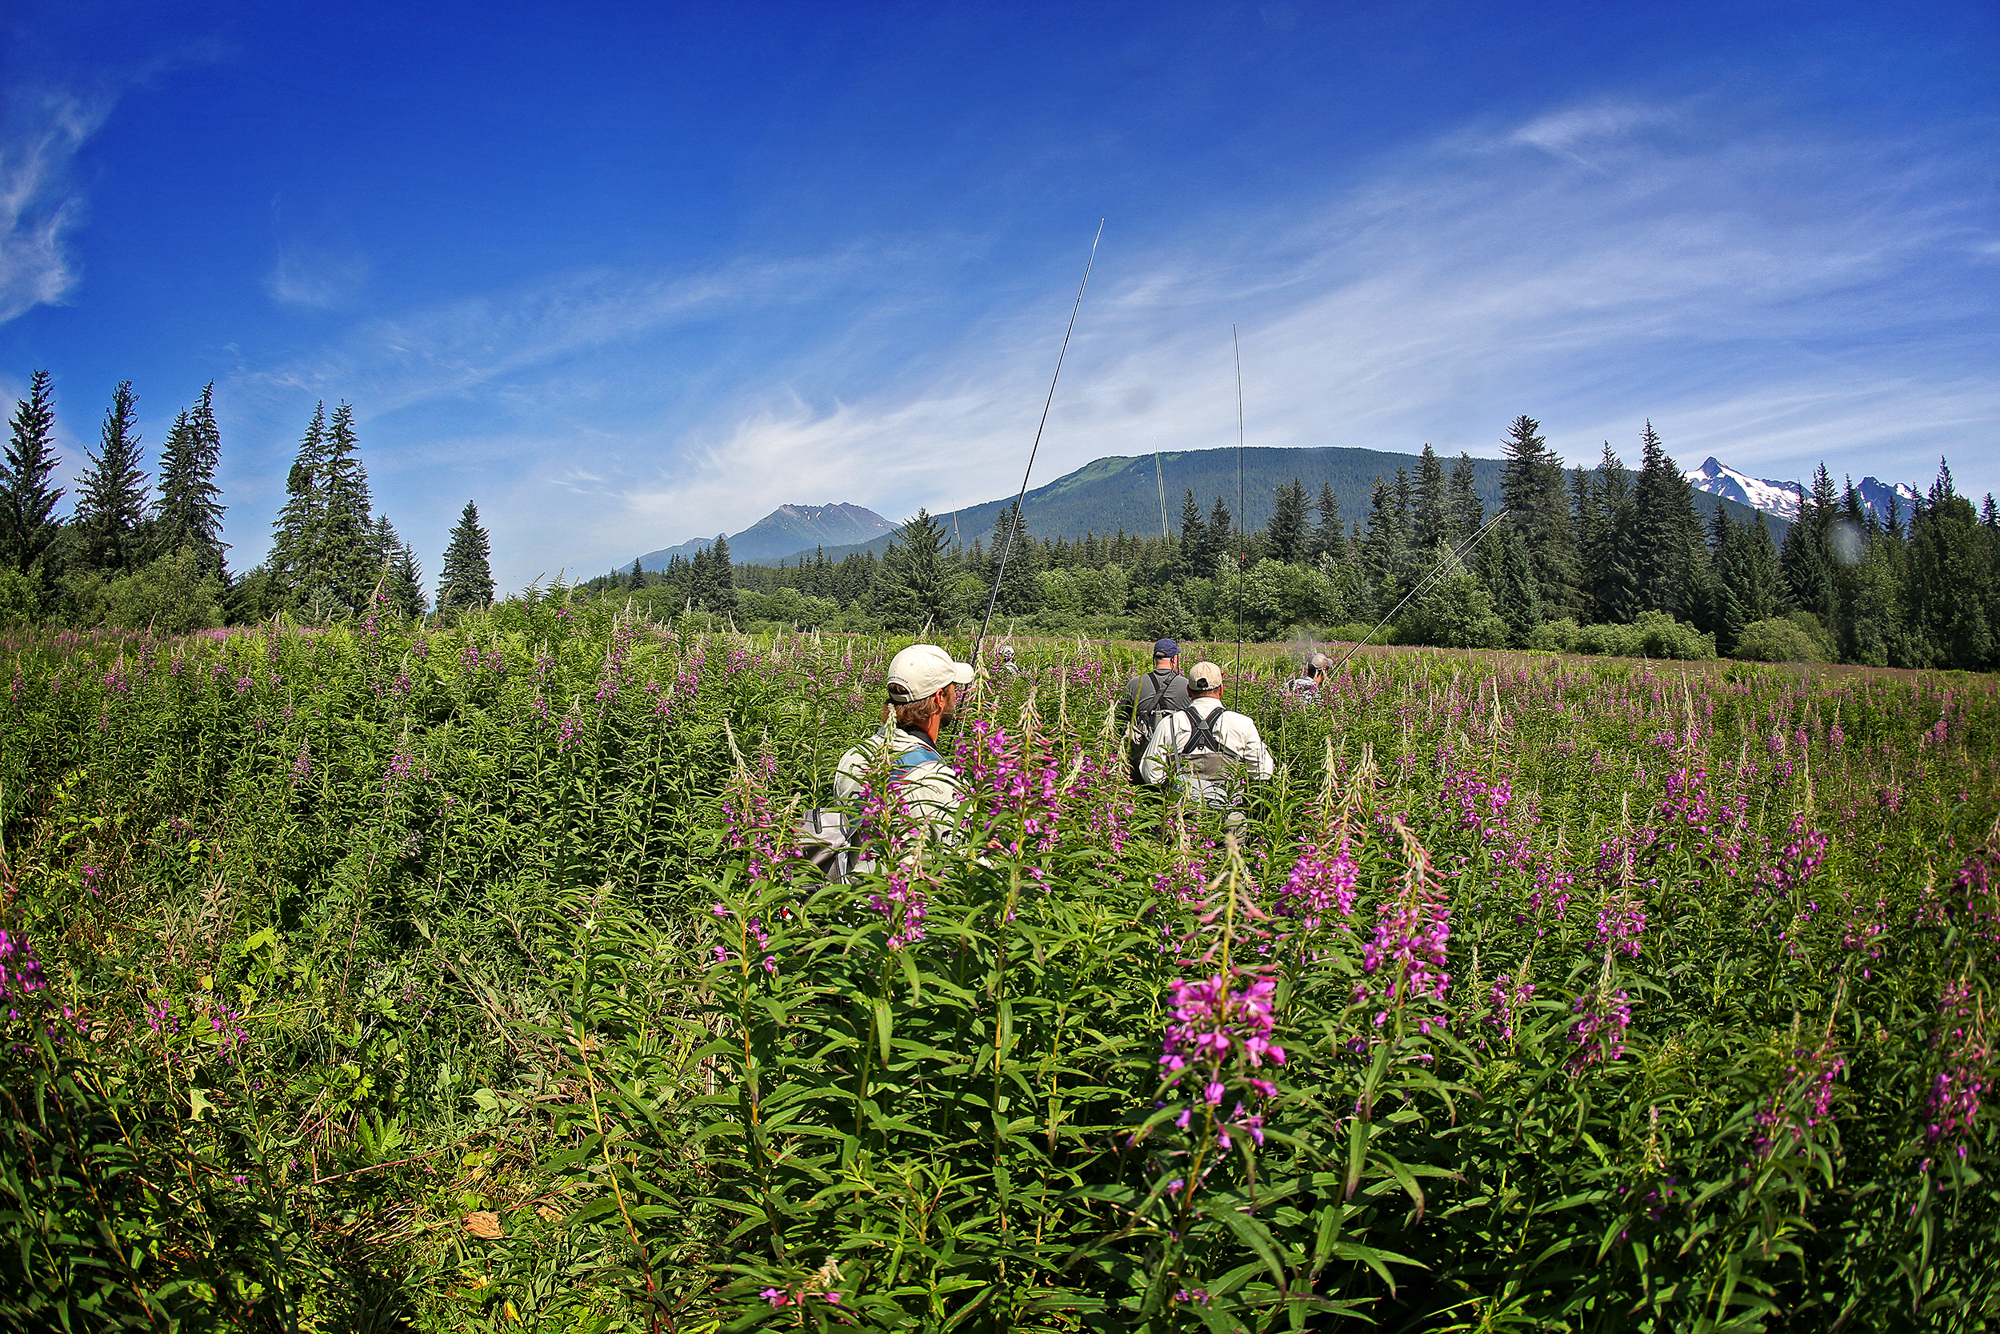 Making our way to another favorite spot a bit farther downriver means tromping through a preposterously bear-friendly meadow that is choked with fireweed that exceeds 8 feet in height in many places. Whiffs of bear musk, whether real or imagined, are detected by more than one angler as we happily but cautiously make our way through the towering weeds. As we emerge on a sandy bank a few hundred yards downstream, we're greeted by a relatively fresh brown bear print (photo: Earl Harper).